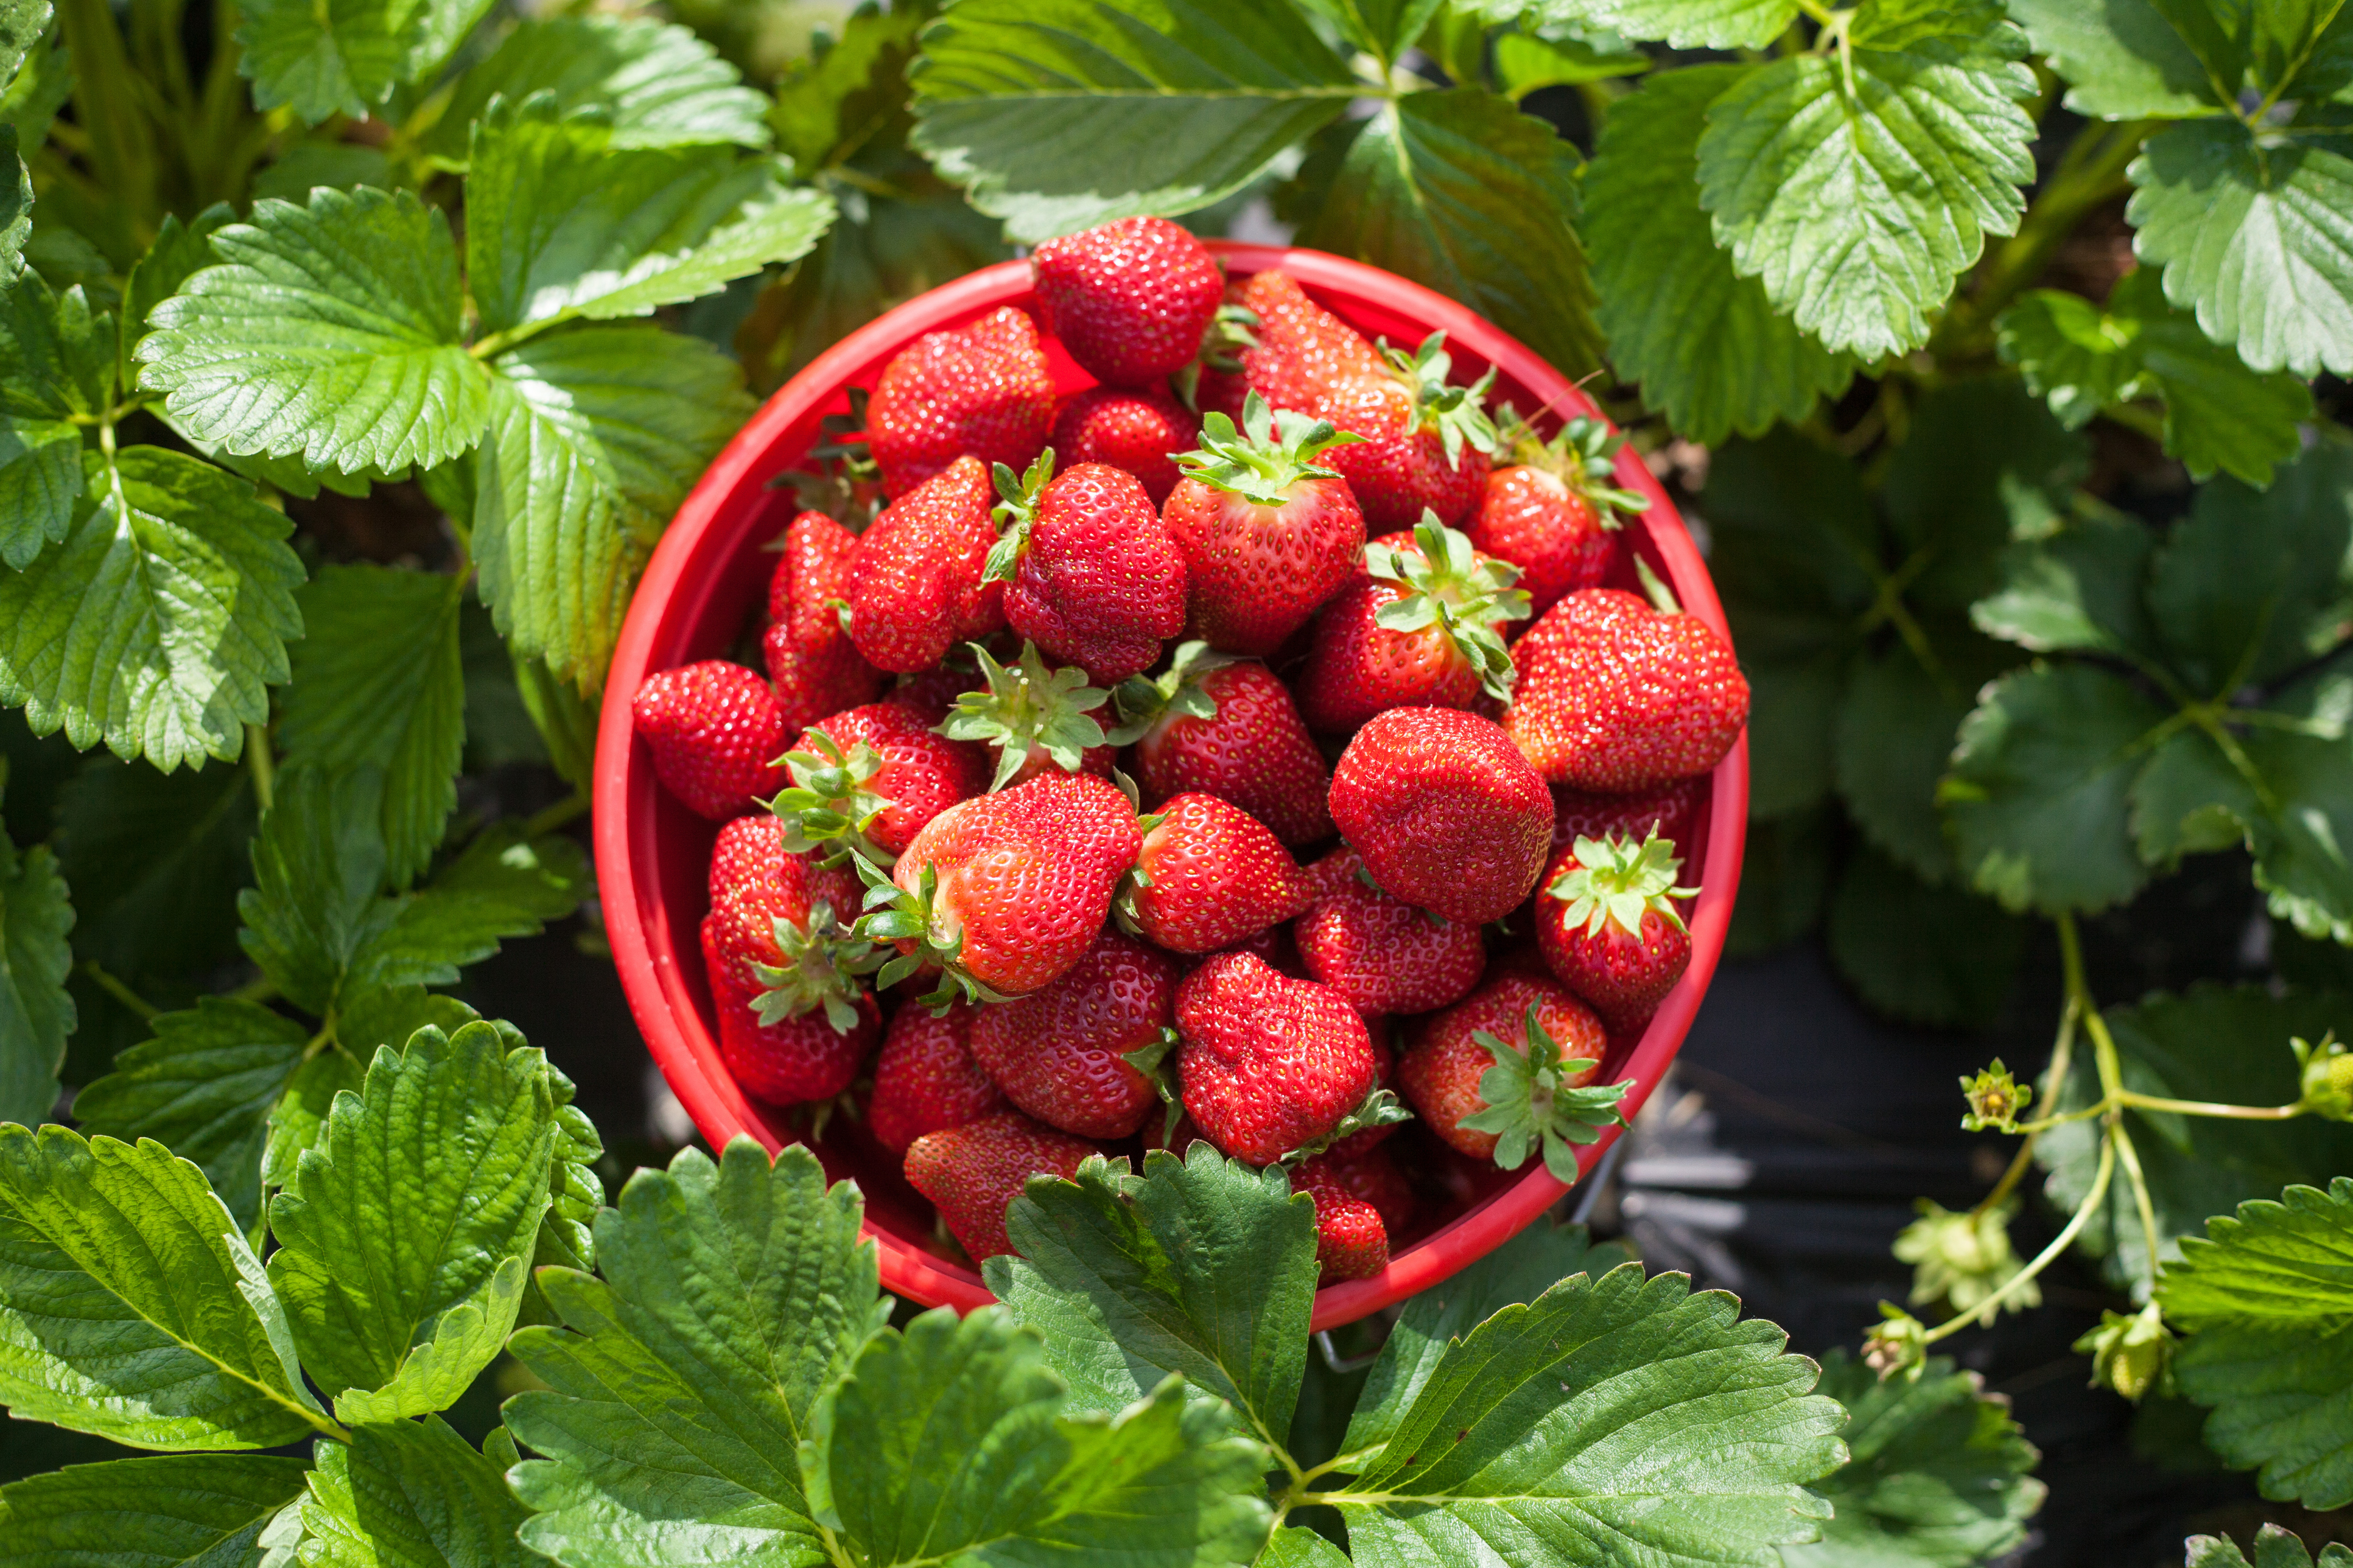 Achieve a healthy complexion by introducing strawberries into your diet